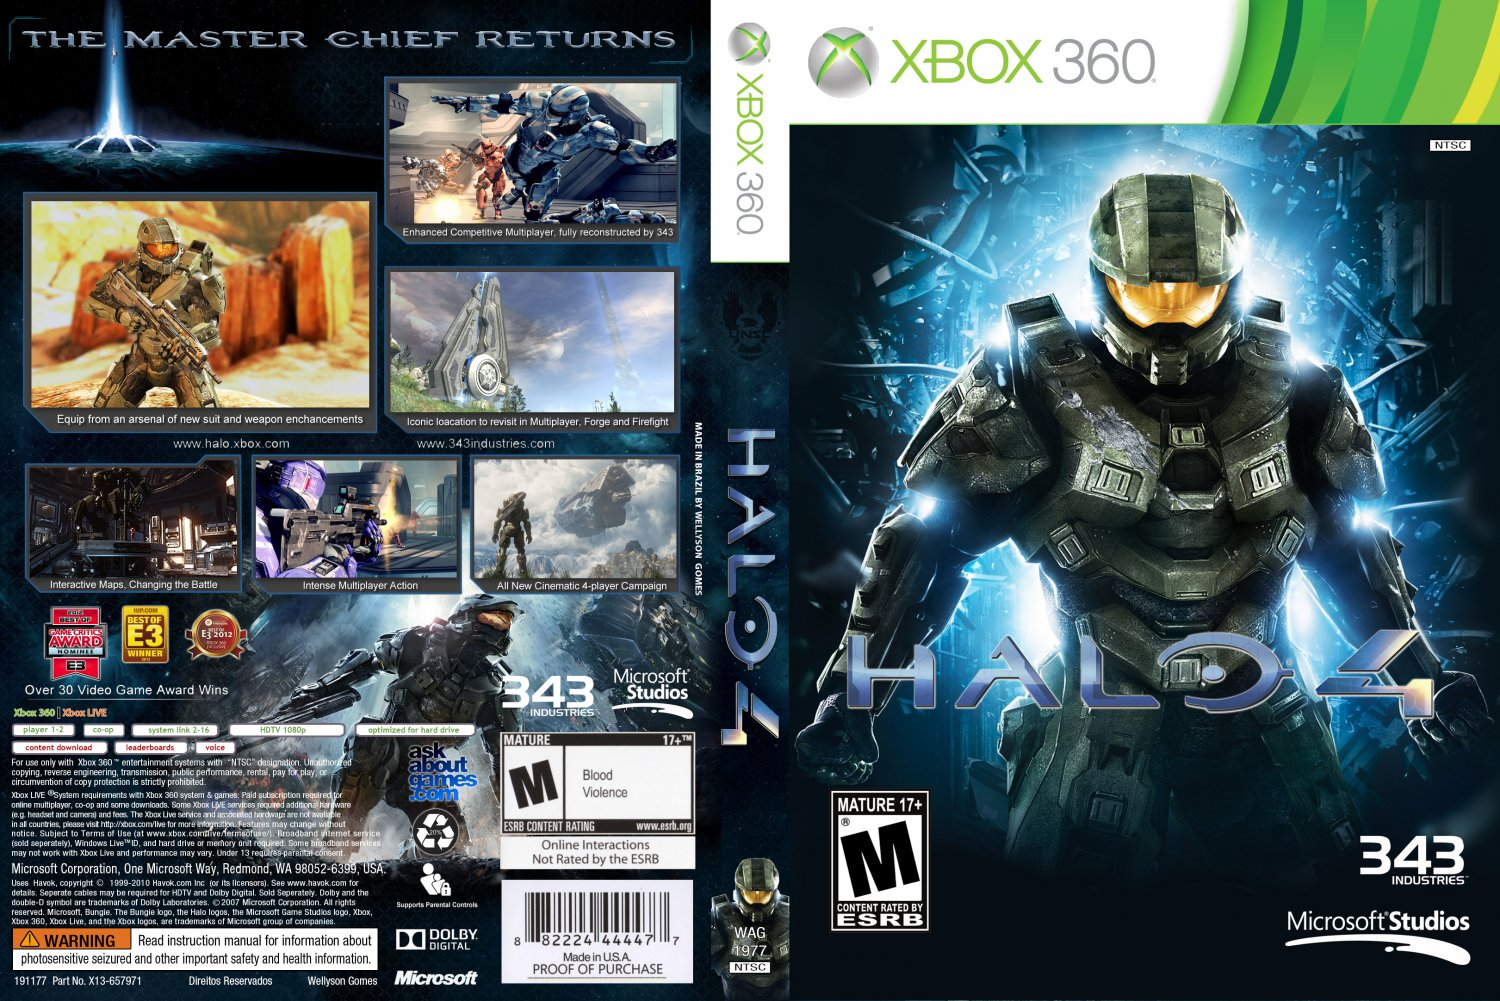 Halo 4 - XBOX 360 Game Covers - HALO 4 Mixed :: DVD Covers